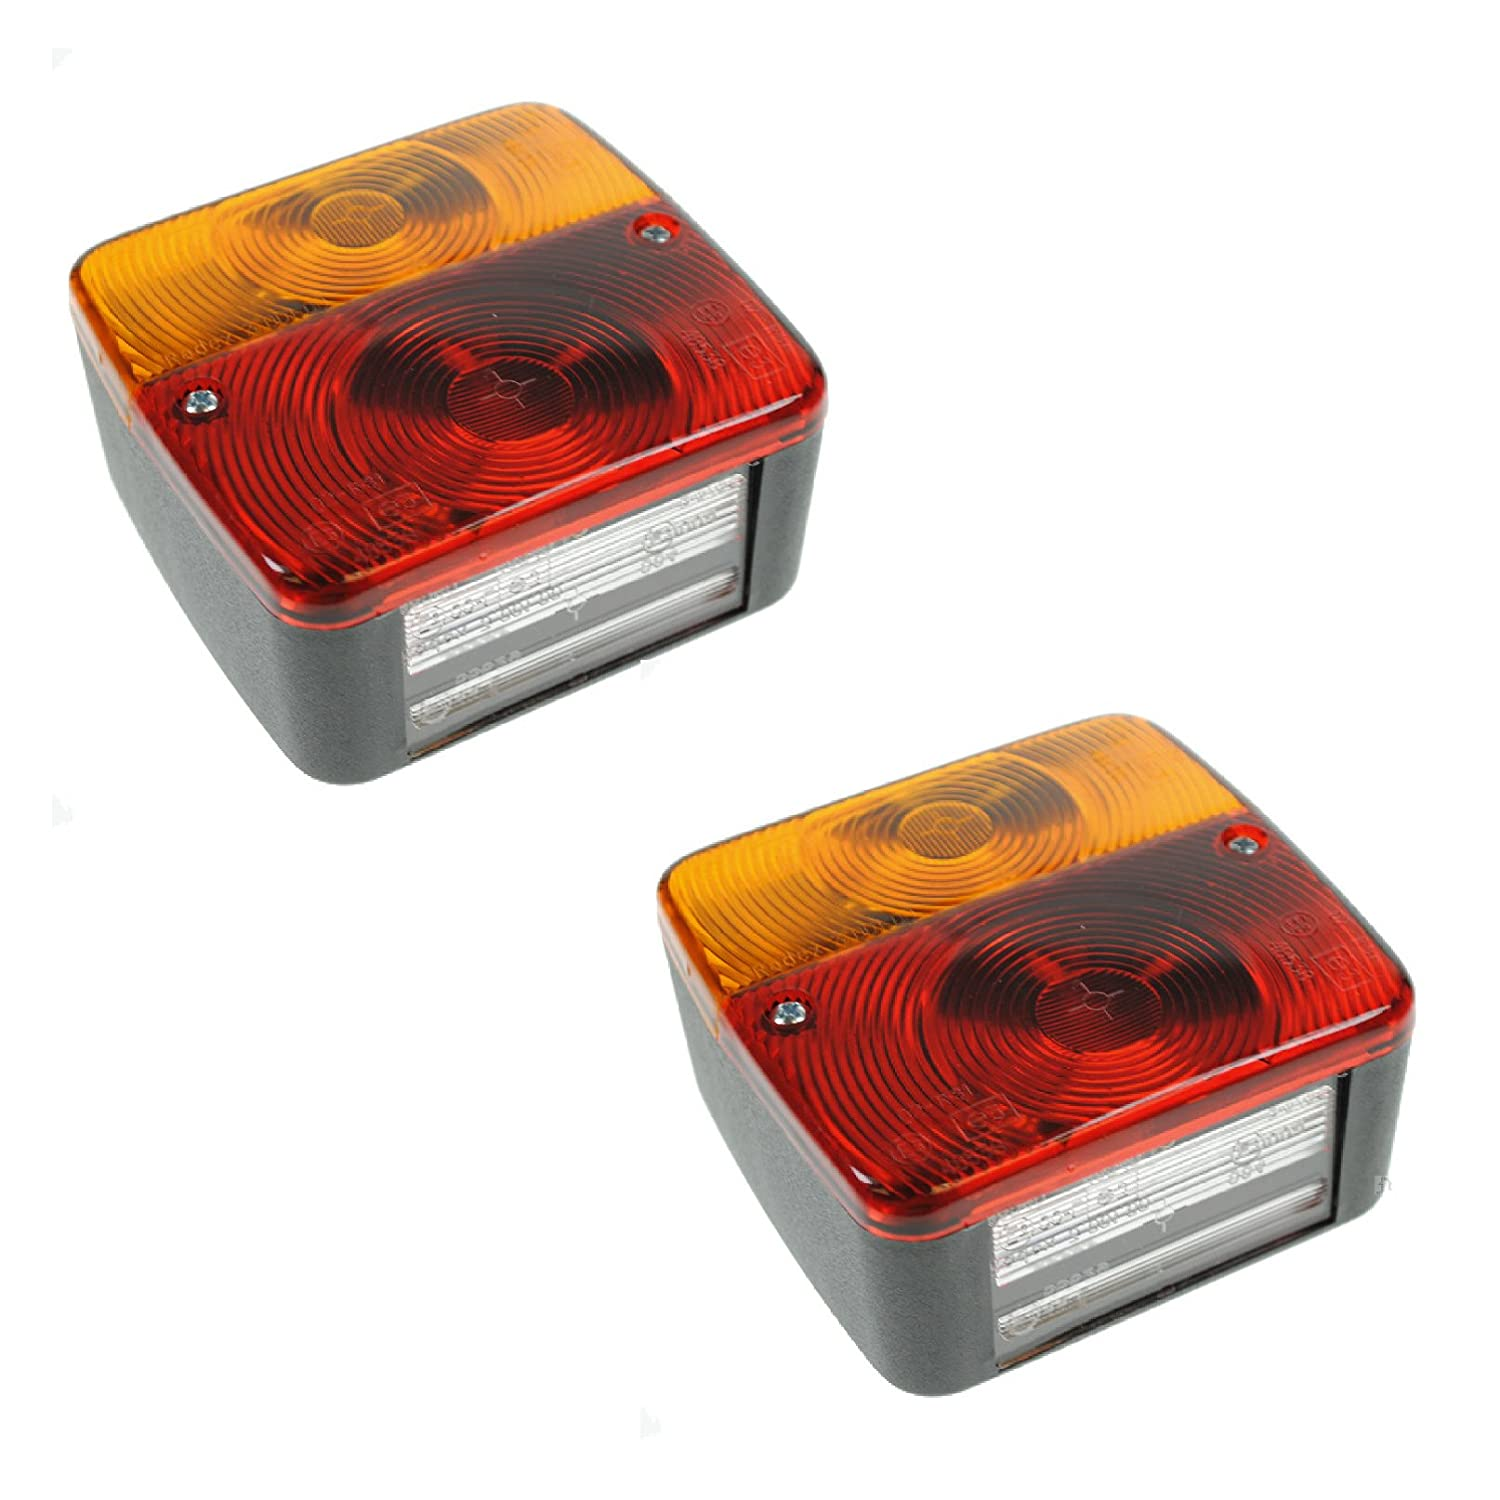 2 x Trailer Tail Rear Lights 4 Function Light Cluster Towing Brake Indicator Roadster